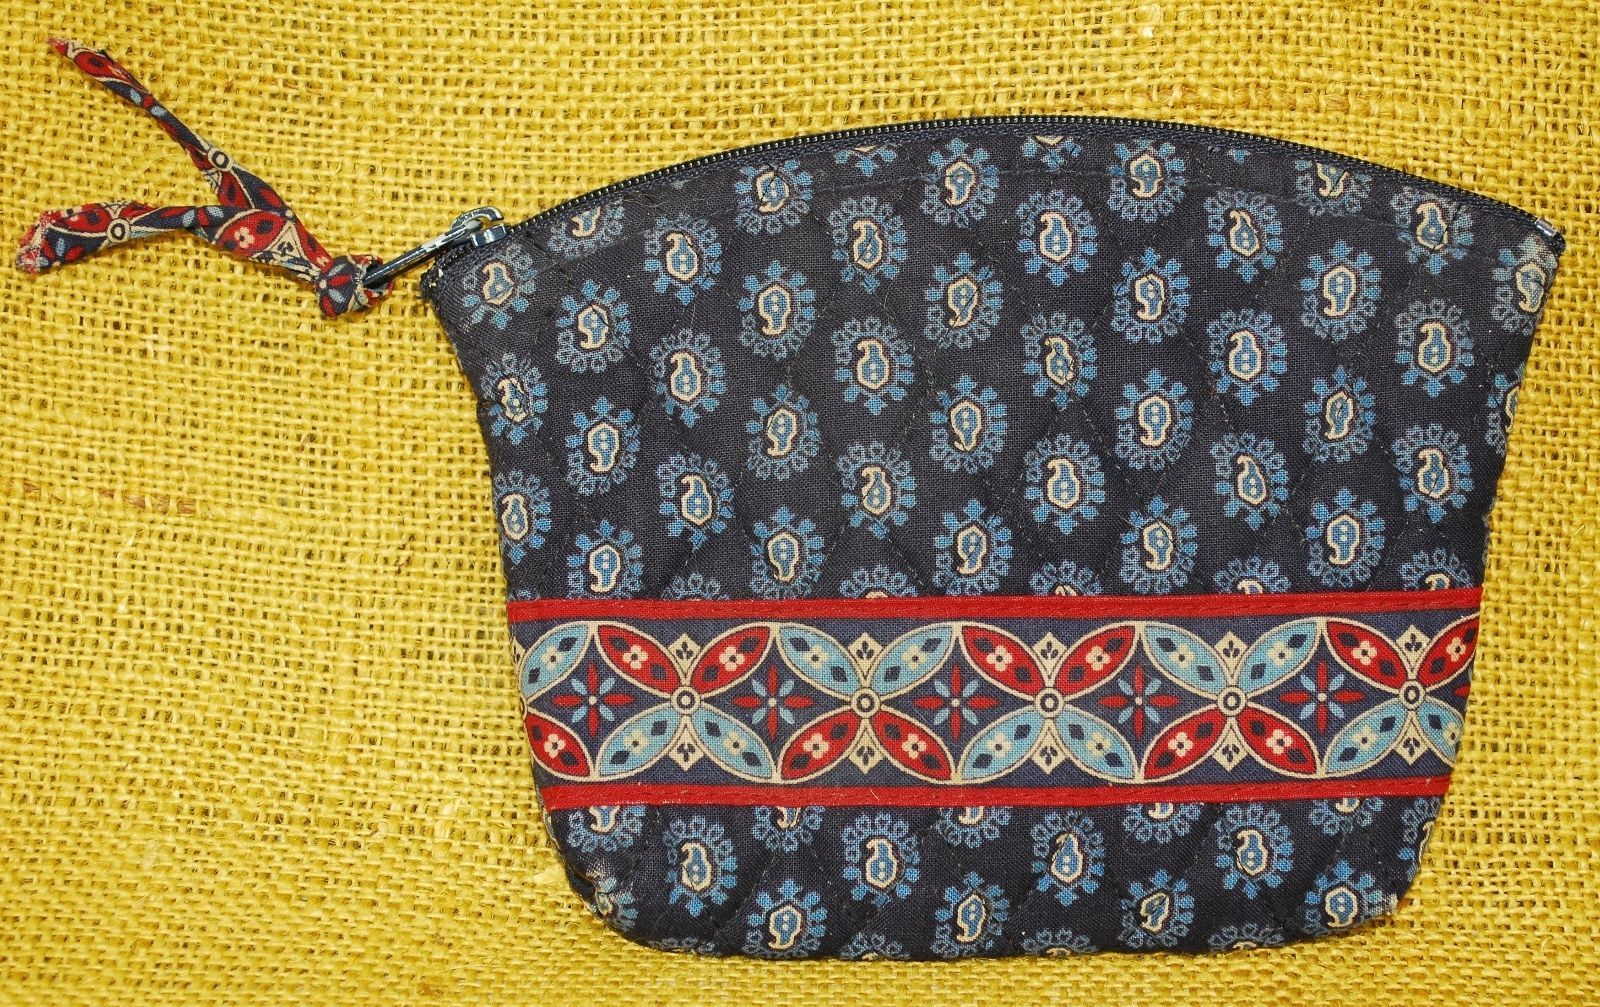 ed0b6e7ad5 Vera Bradley Small Cosmetic Bag Vintage Navy Blue Paisley and Dark Red  Pattern Measures 5.5